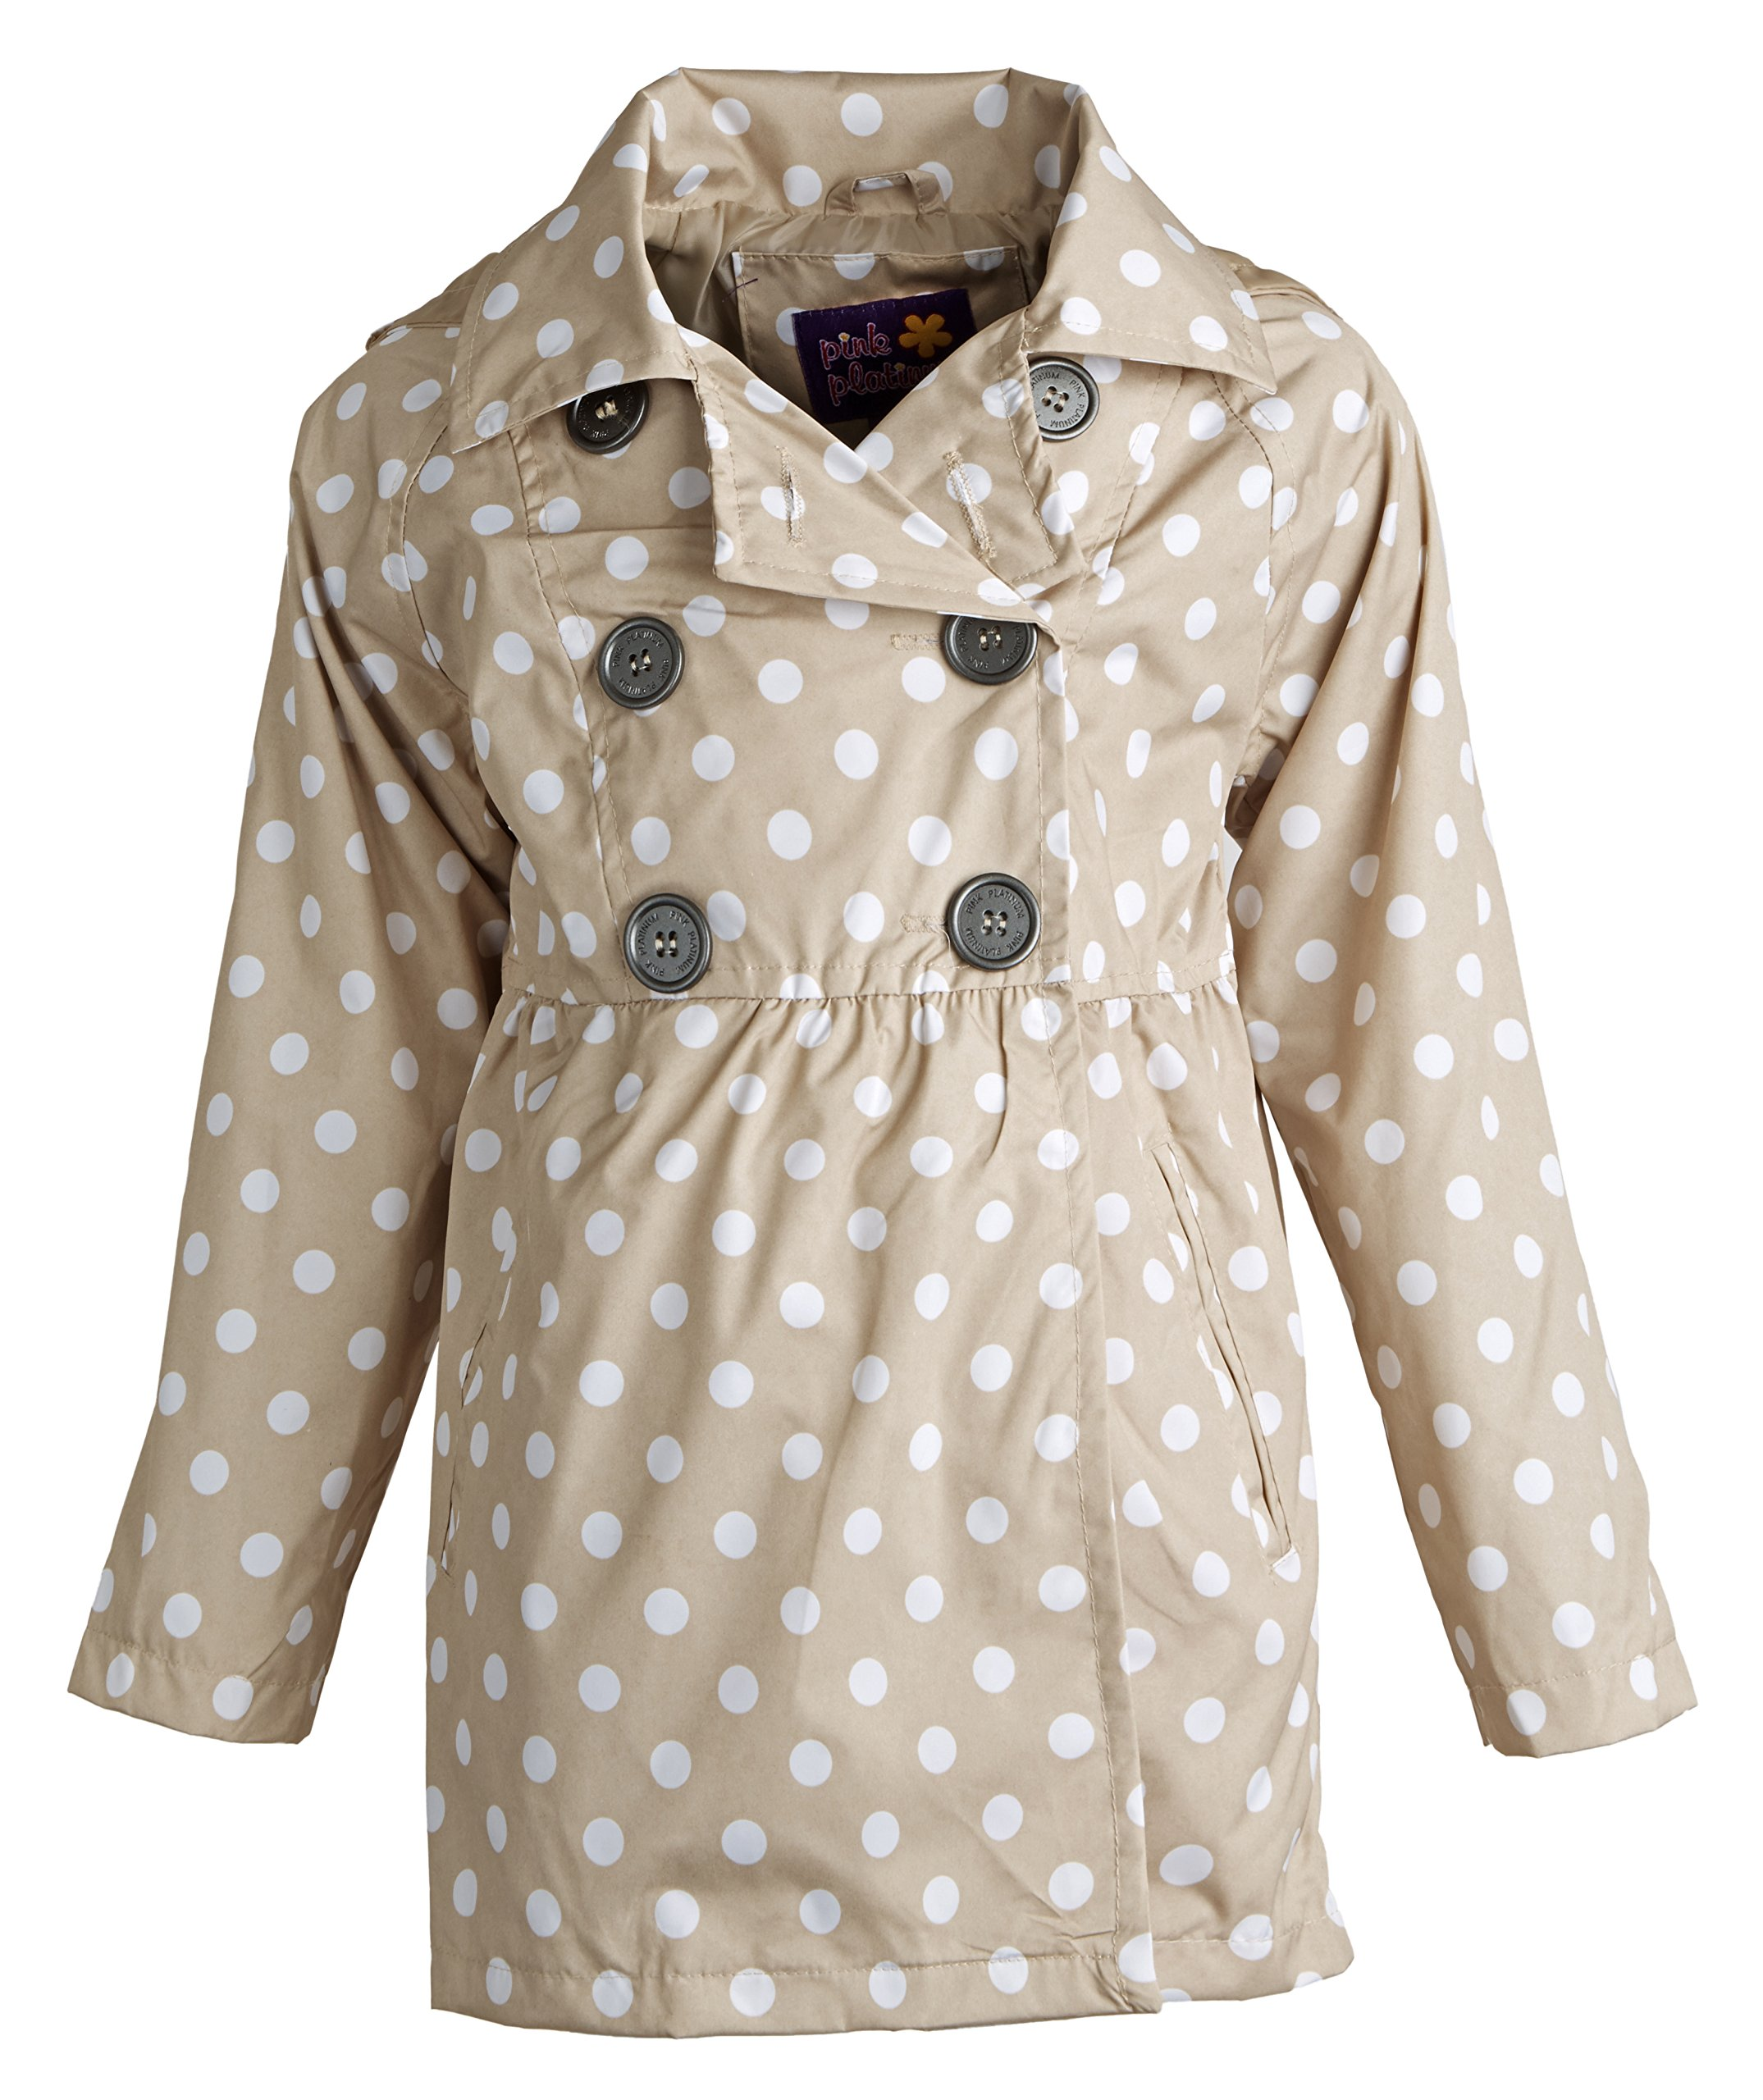 Pink Platinum Little Girls Double Breasted Polka Dot Waisted Spring Trench Coat - Khaki (Size 4) by Pink Platinum (Image #2)